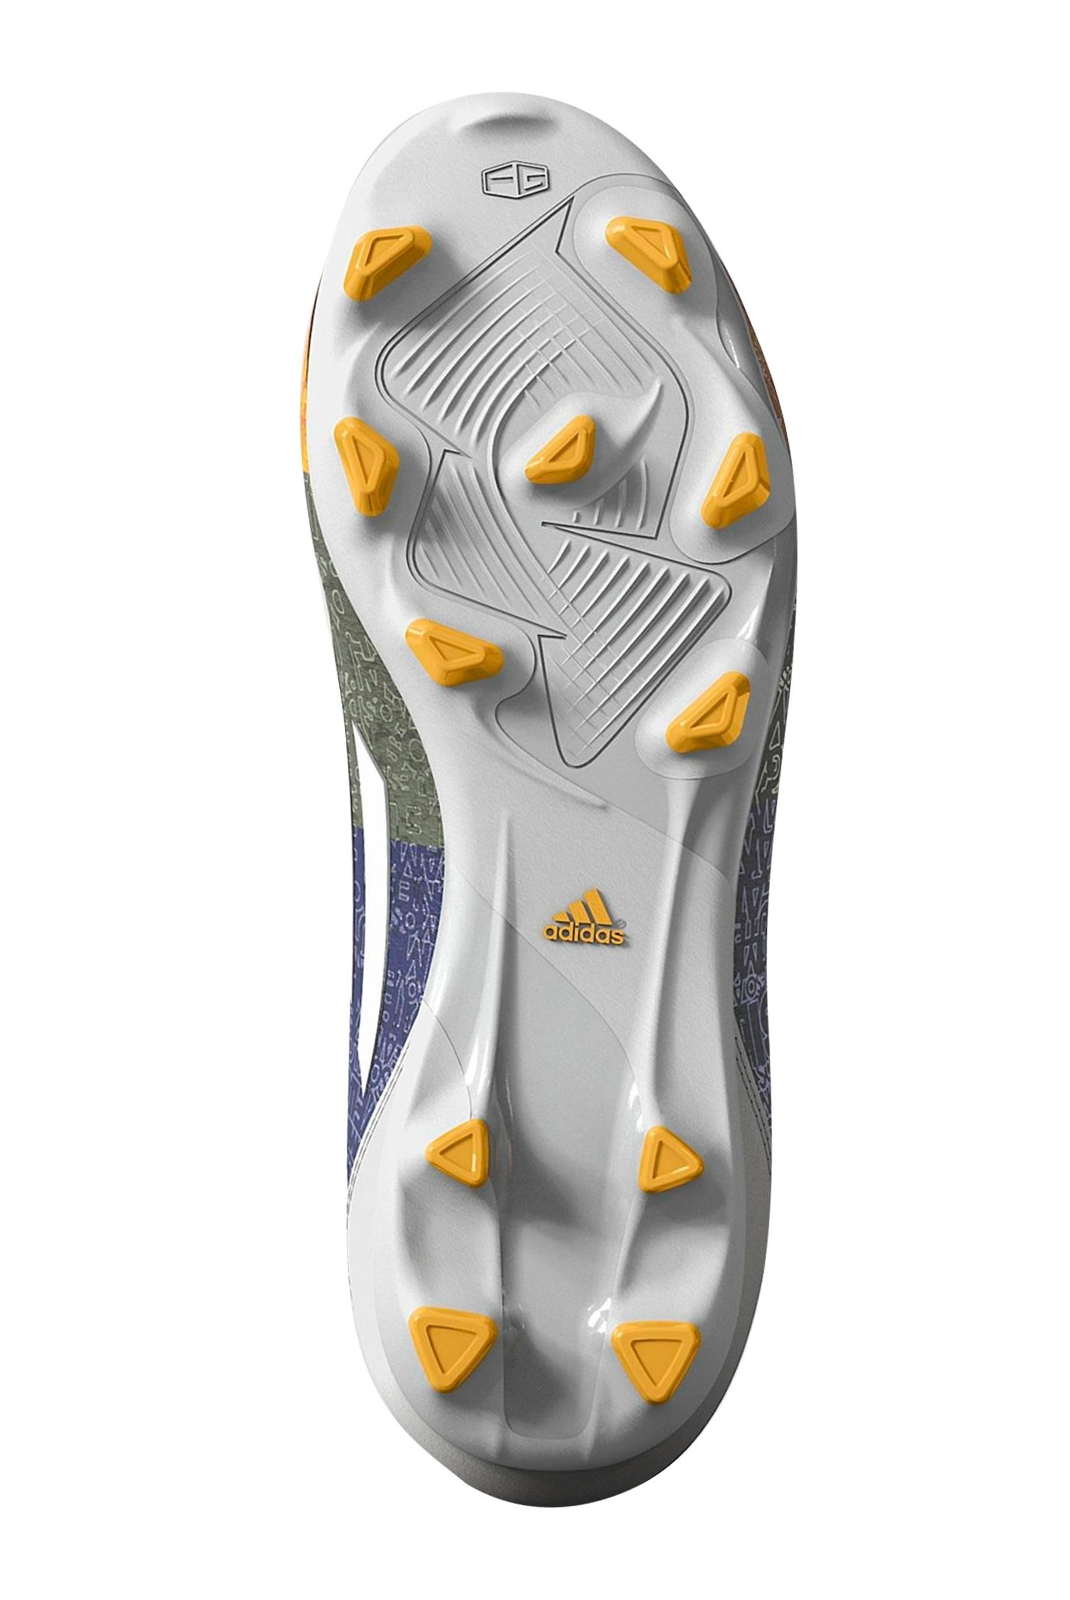 Chaussures  Adidas M21765 F10 FG J (Messi) BLACK / YELLOW